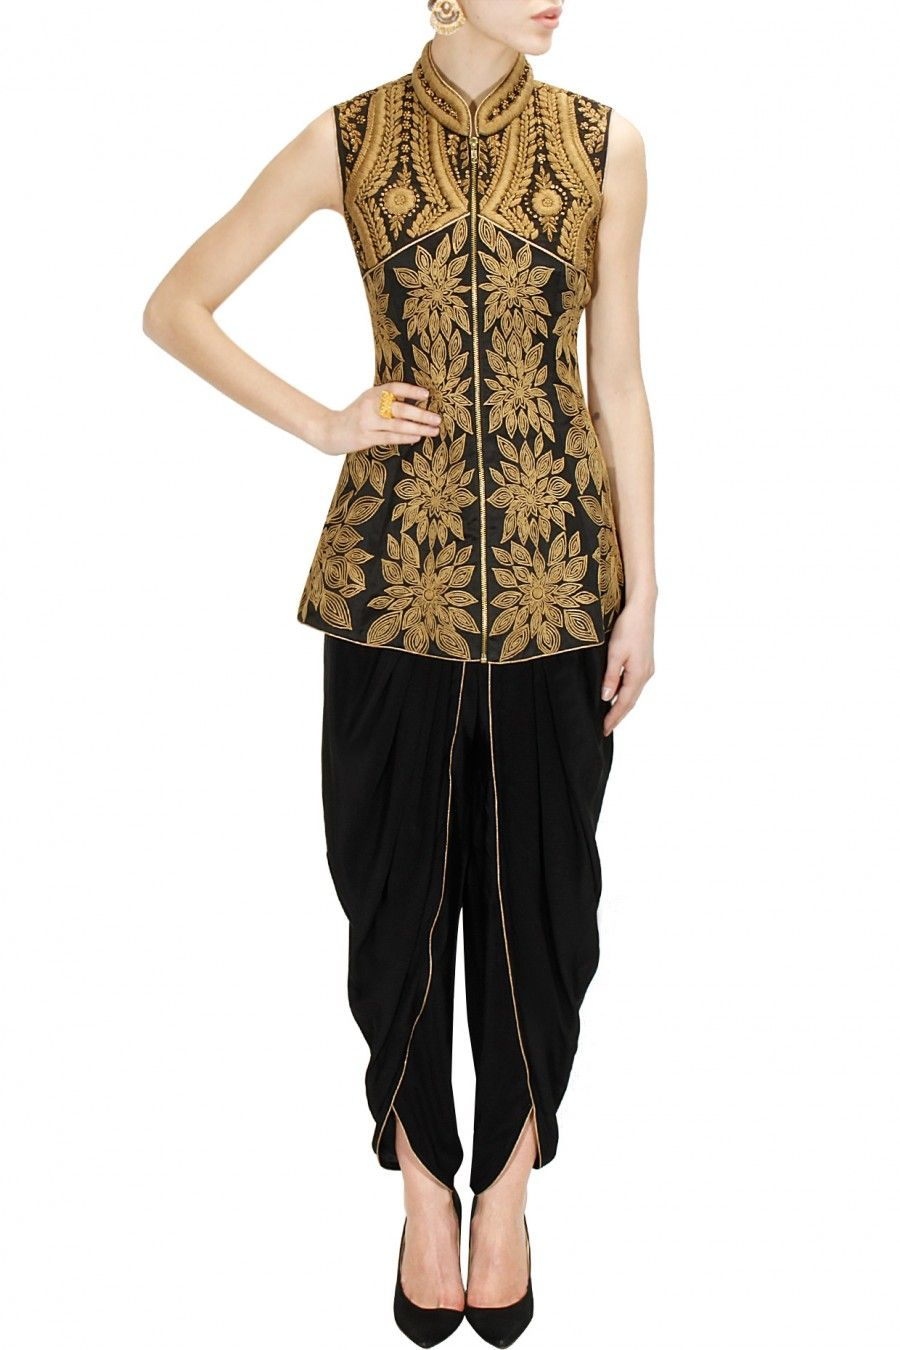 67986465c Black dori embroidered peplum jacket with dhoti pants available only at Pernia's  Pop-Up Shop.